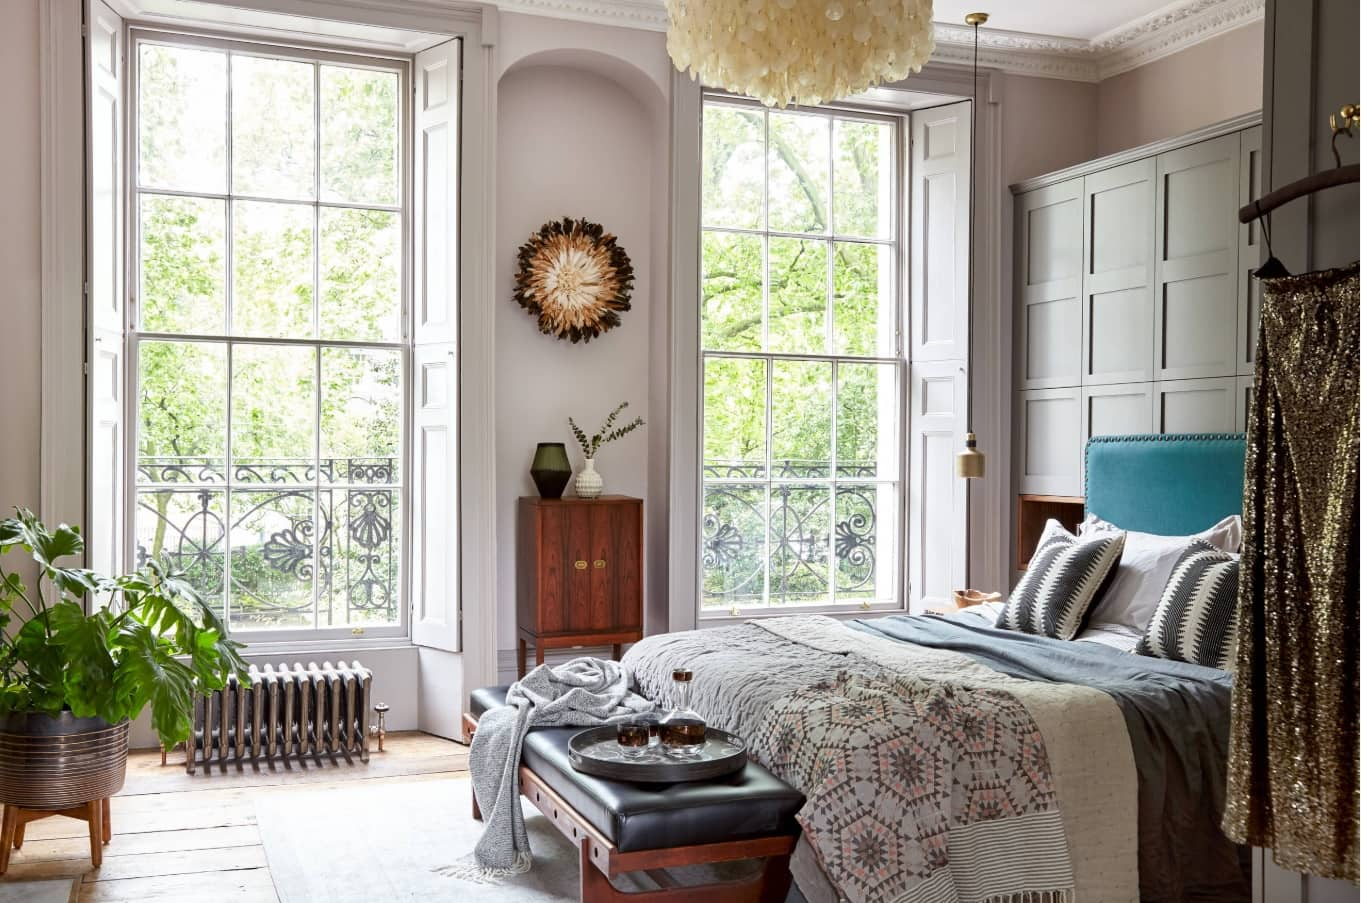 Mix of Styles for Unique Atmosphere of Transitional Master Bedroom. Large sash windows for bright though simple designed high room